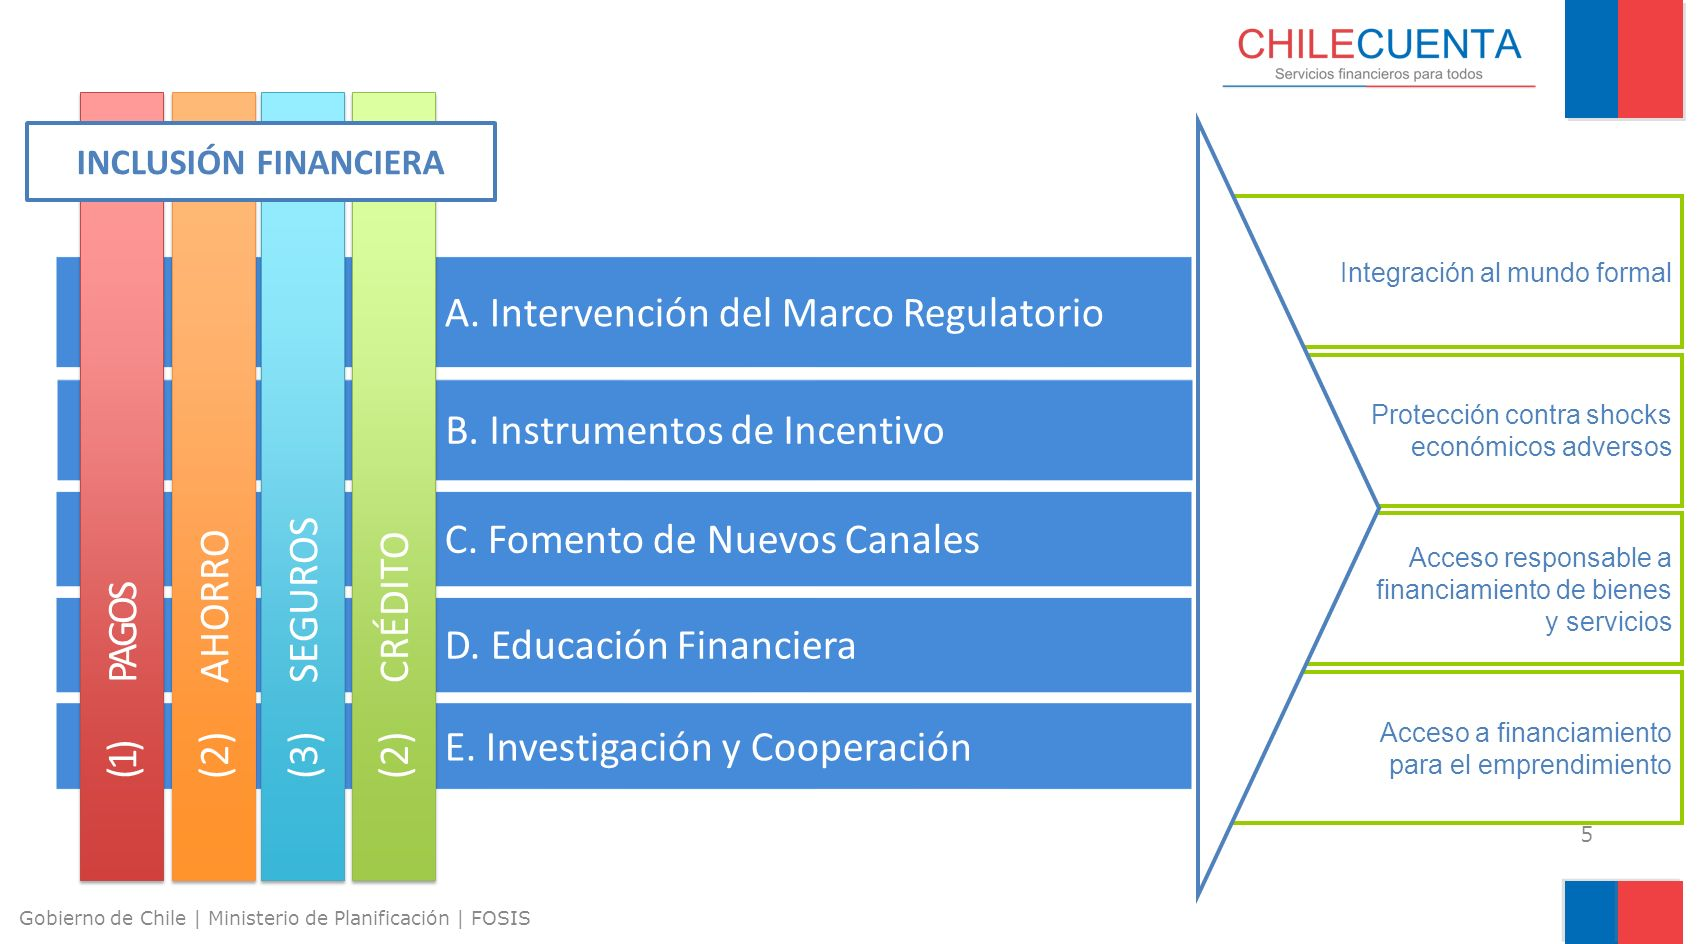 A. Intervención del Marco Regulatorio